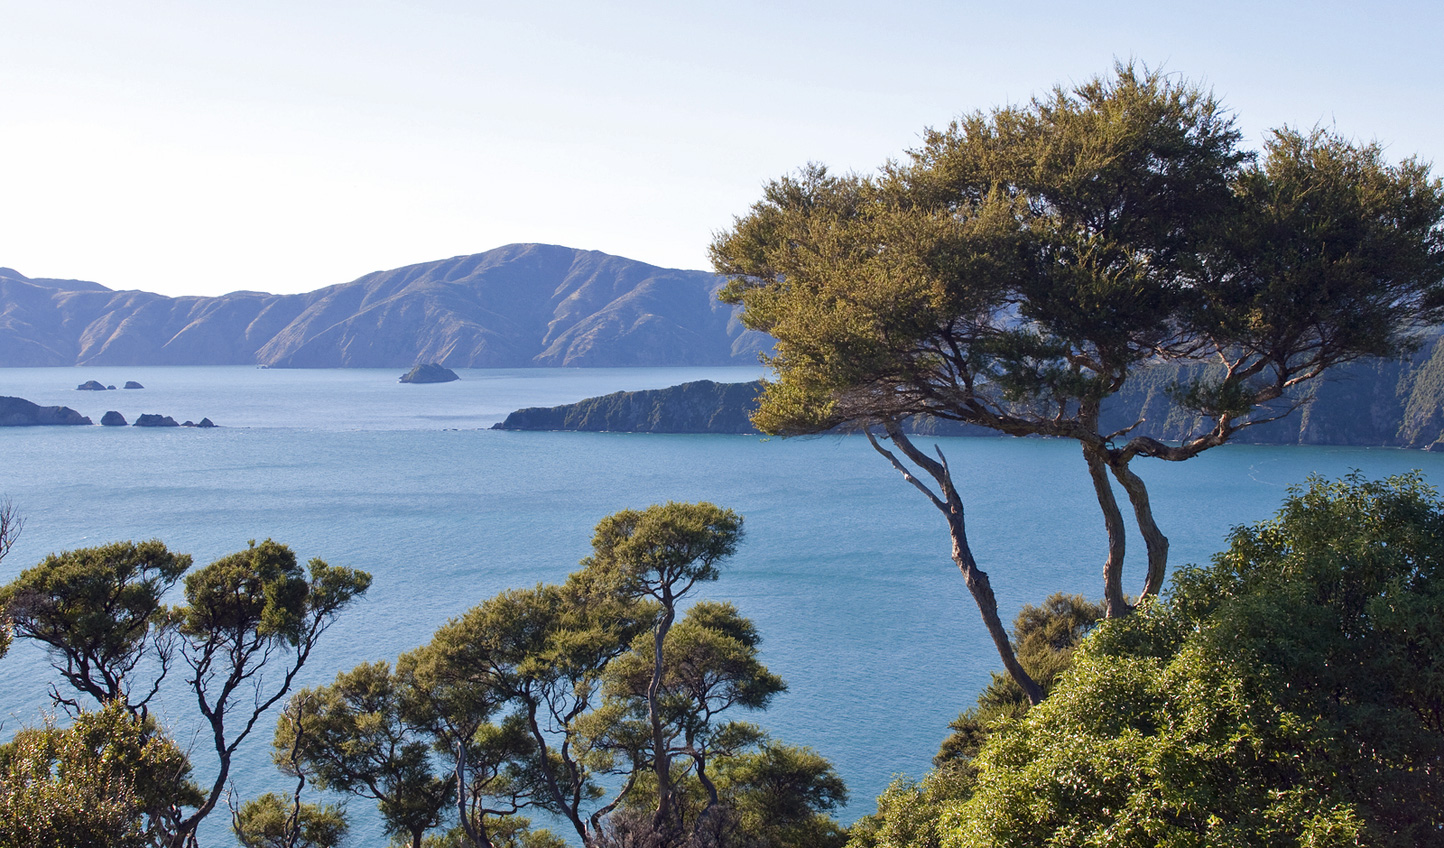 Explore the South Island from top to bottom